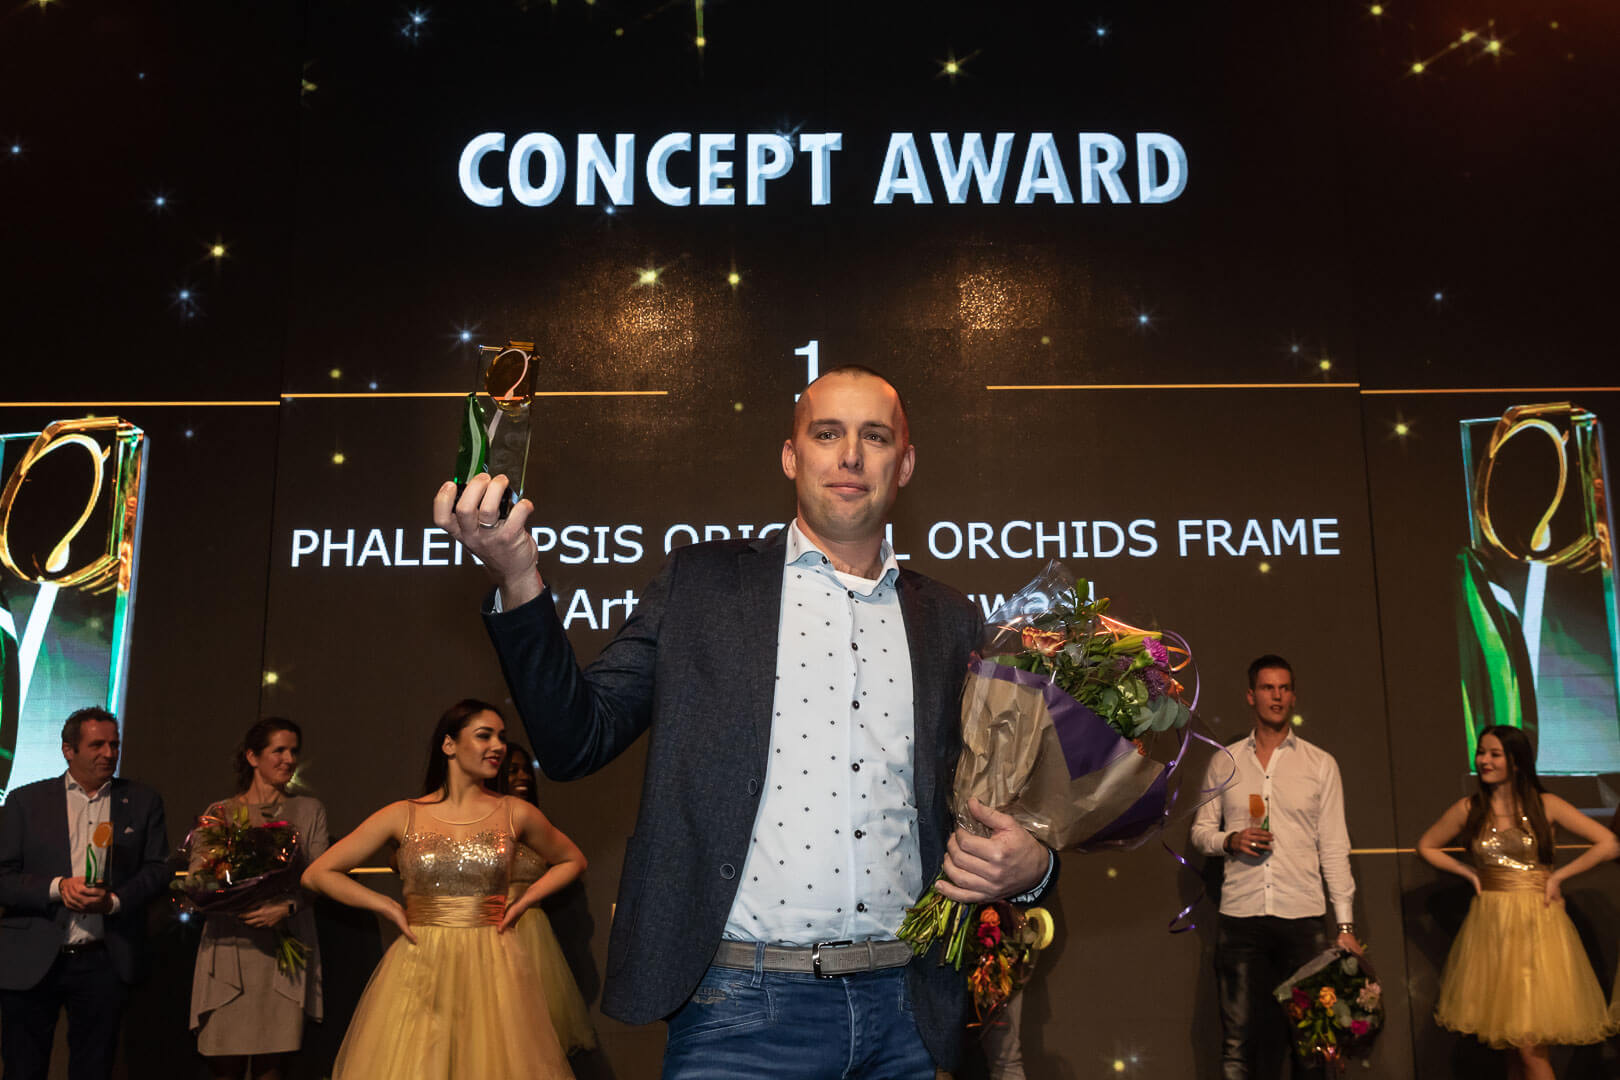 Dutch Tulip Awards Artisan wint met Original Orchids Frame